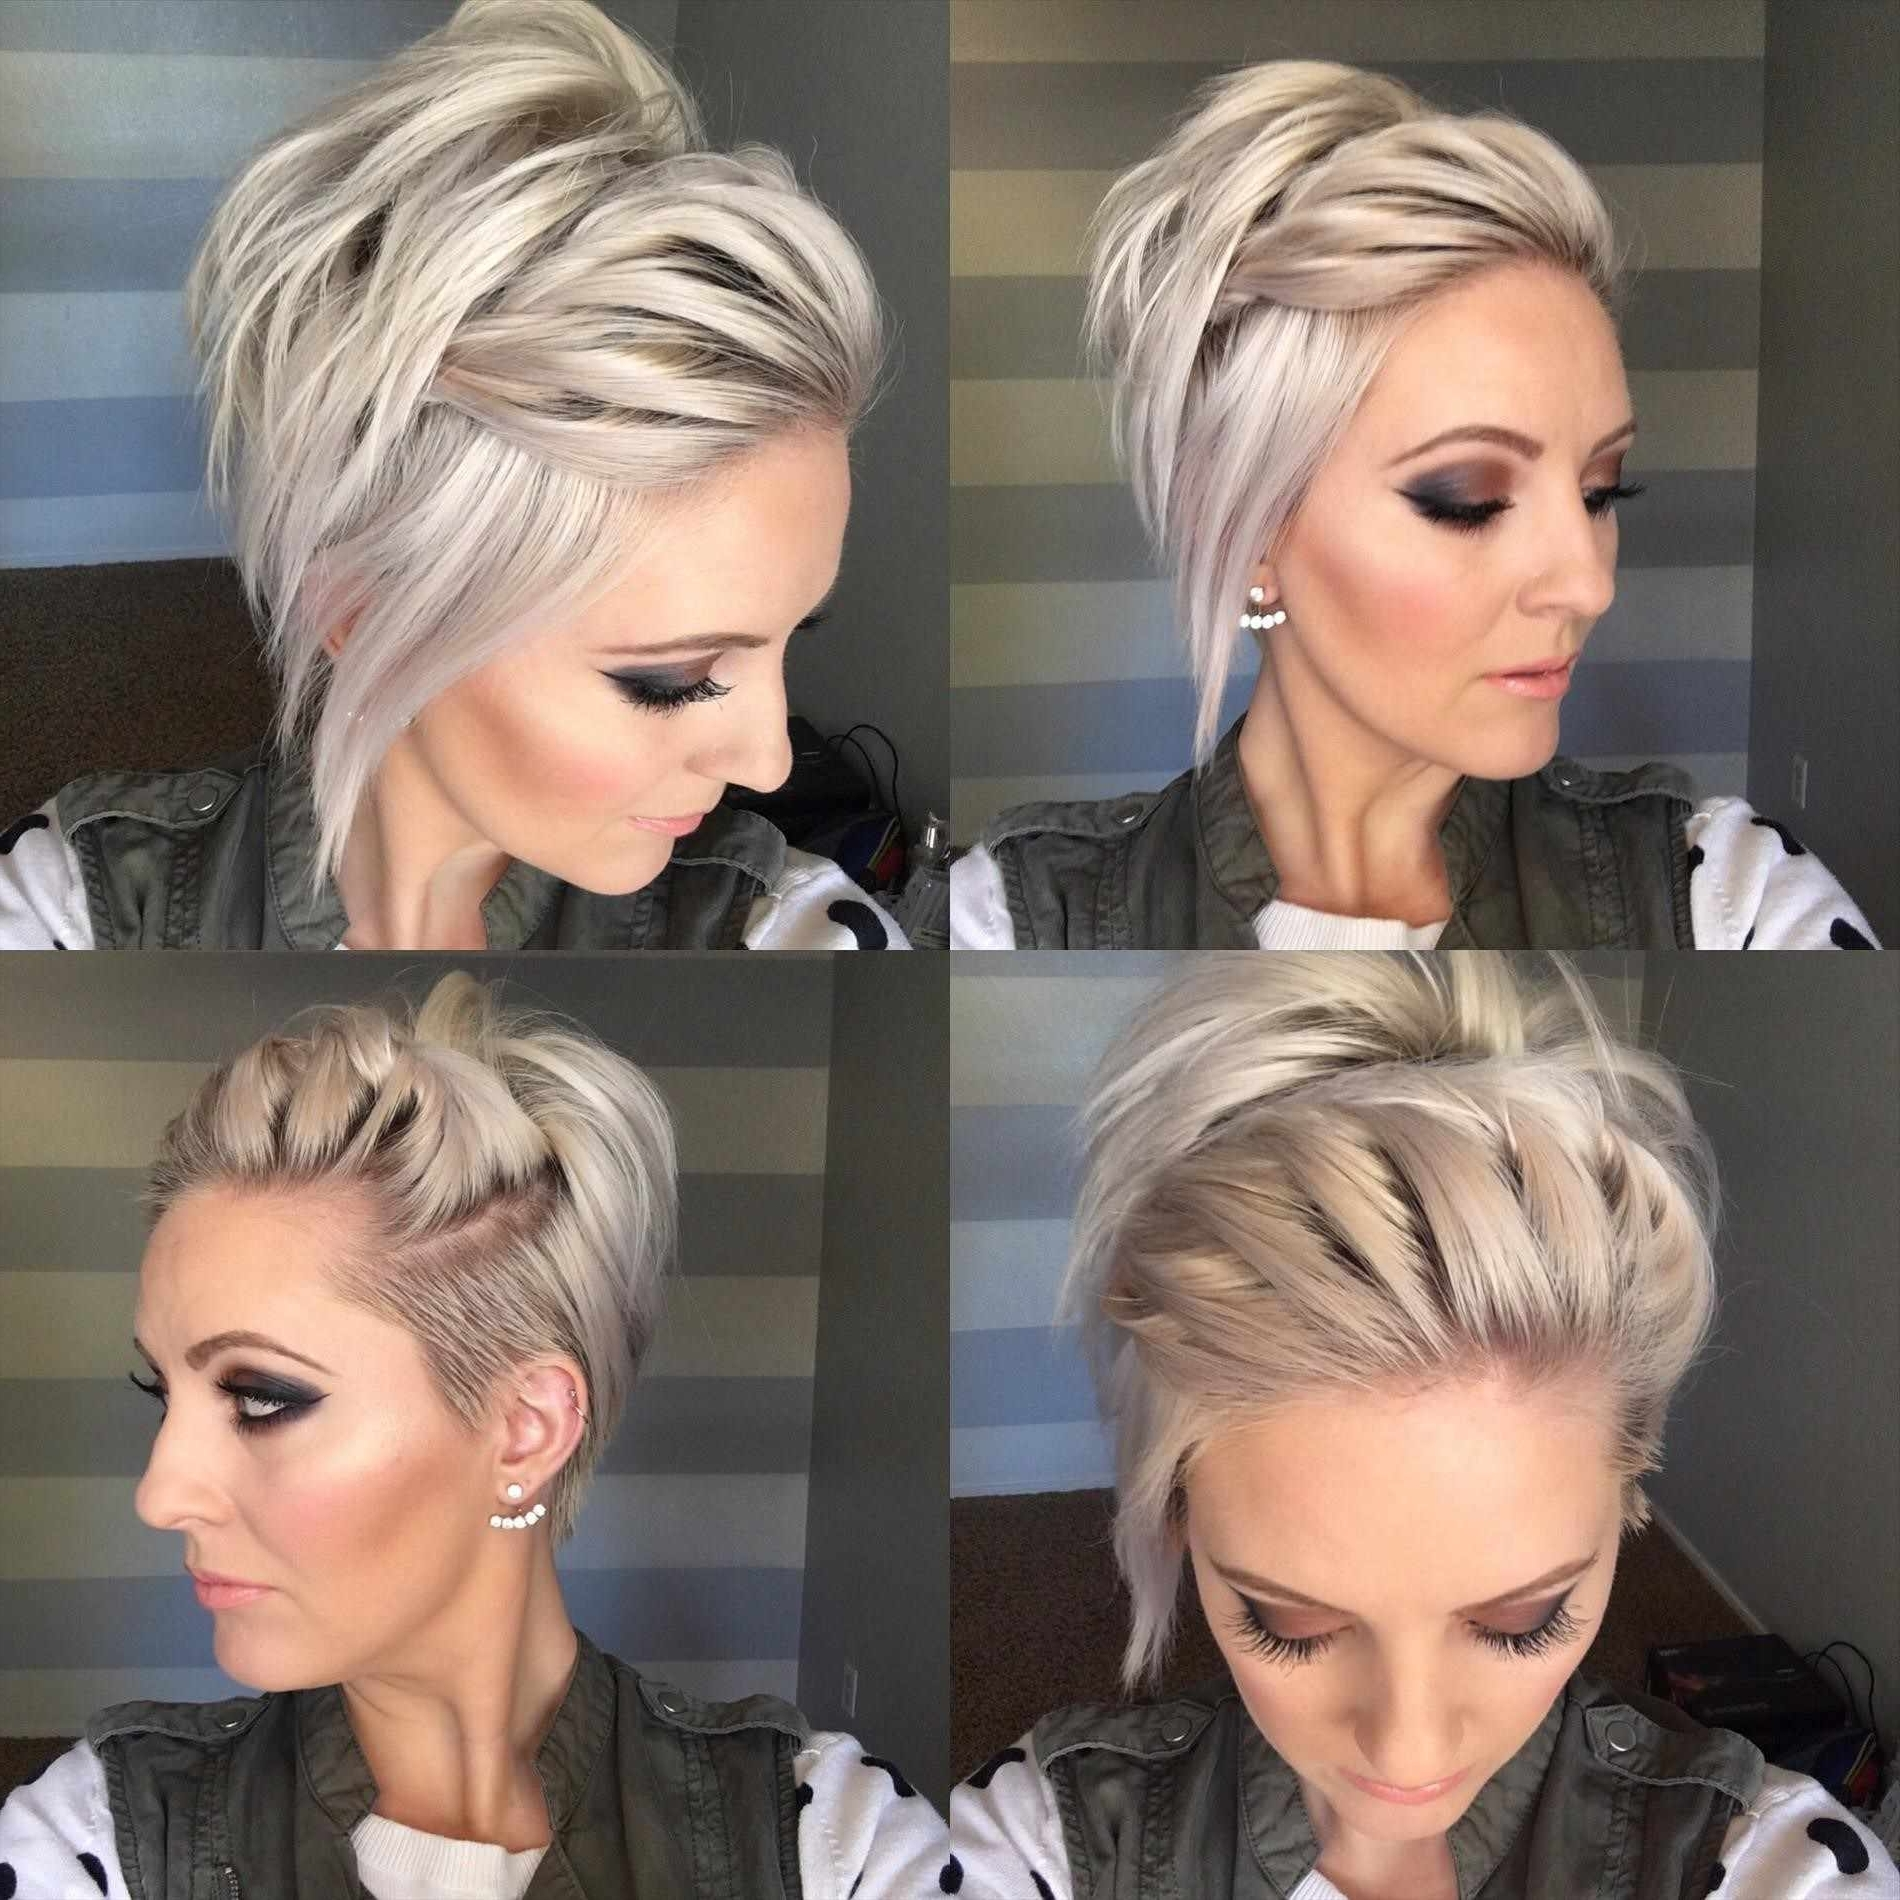 Short Short Hair Bob Updos Hairstyles Tutorials Hairstyle Foðº Women Intended For Soft Updos For Short Hair (View 12 of 15)